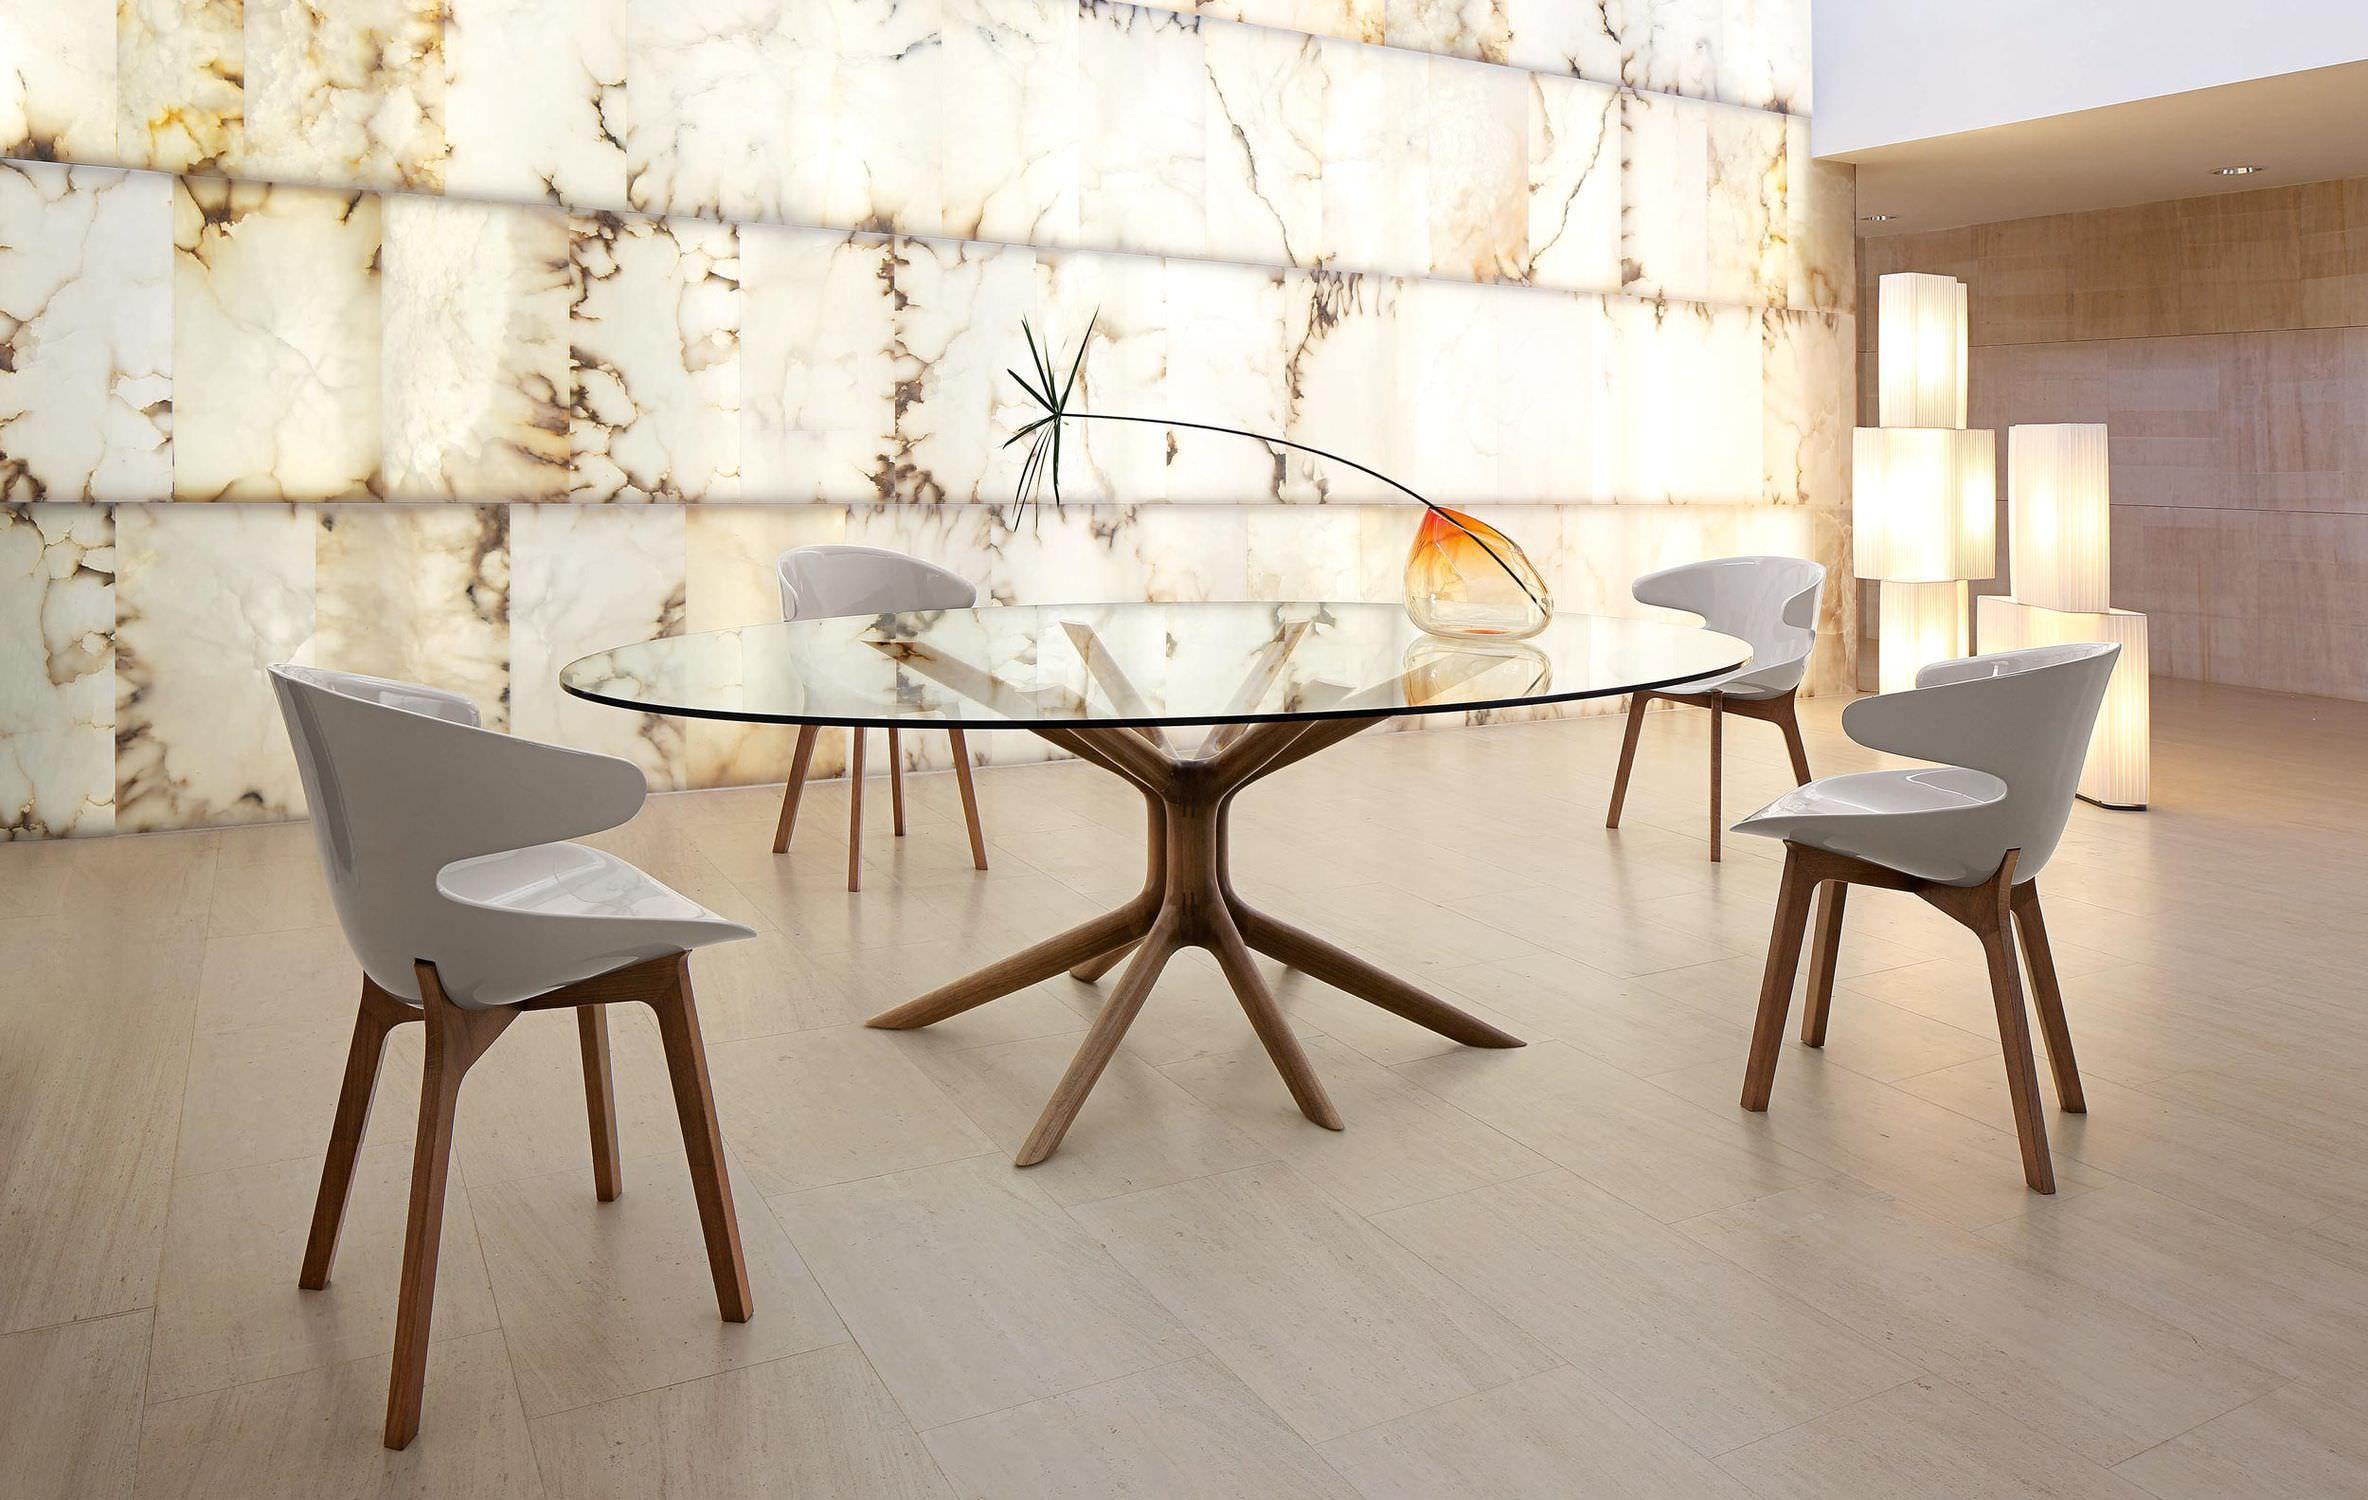 Roche bobois google search furniture pinterest - Table roche et bobois ...